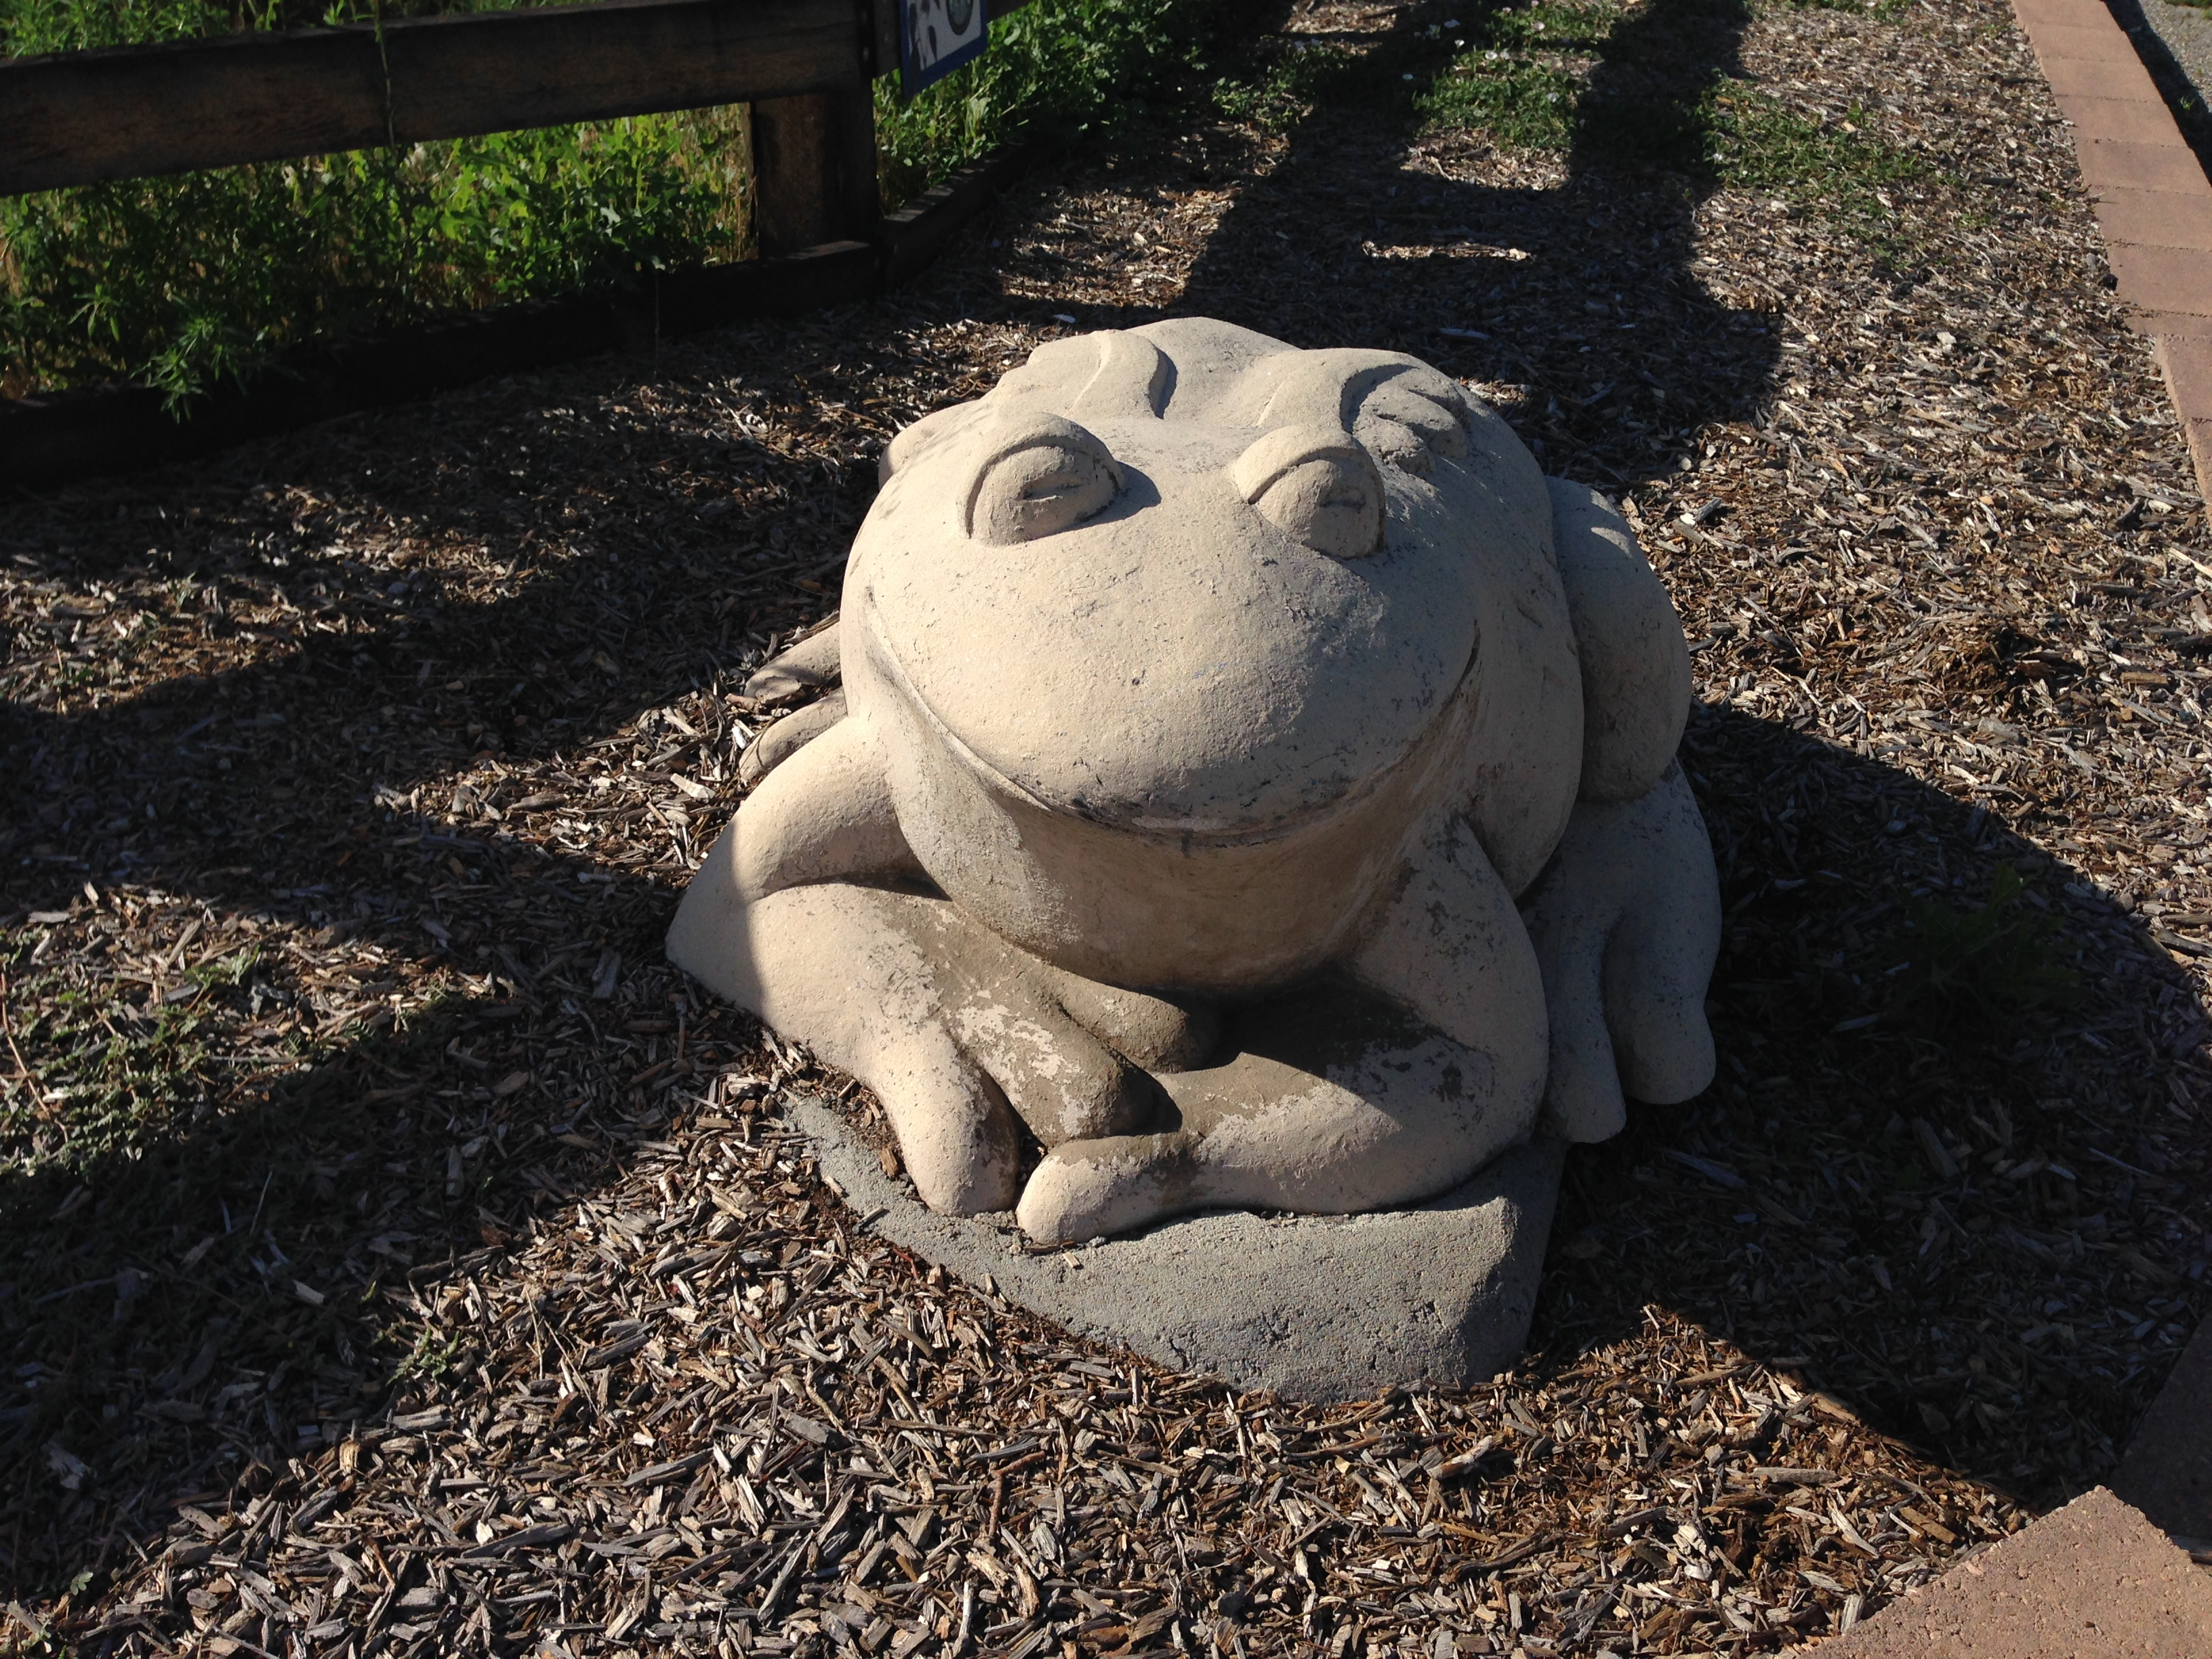 From Statue at Grandview Ponds in Thornton, CO